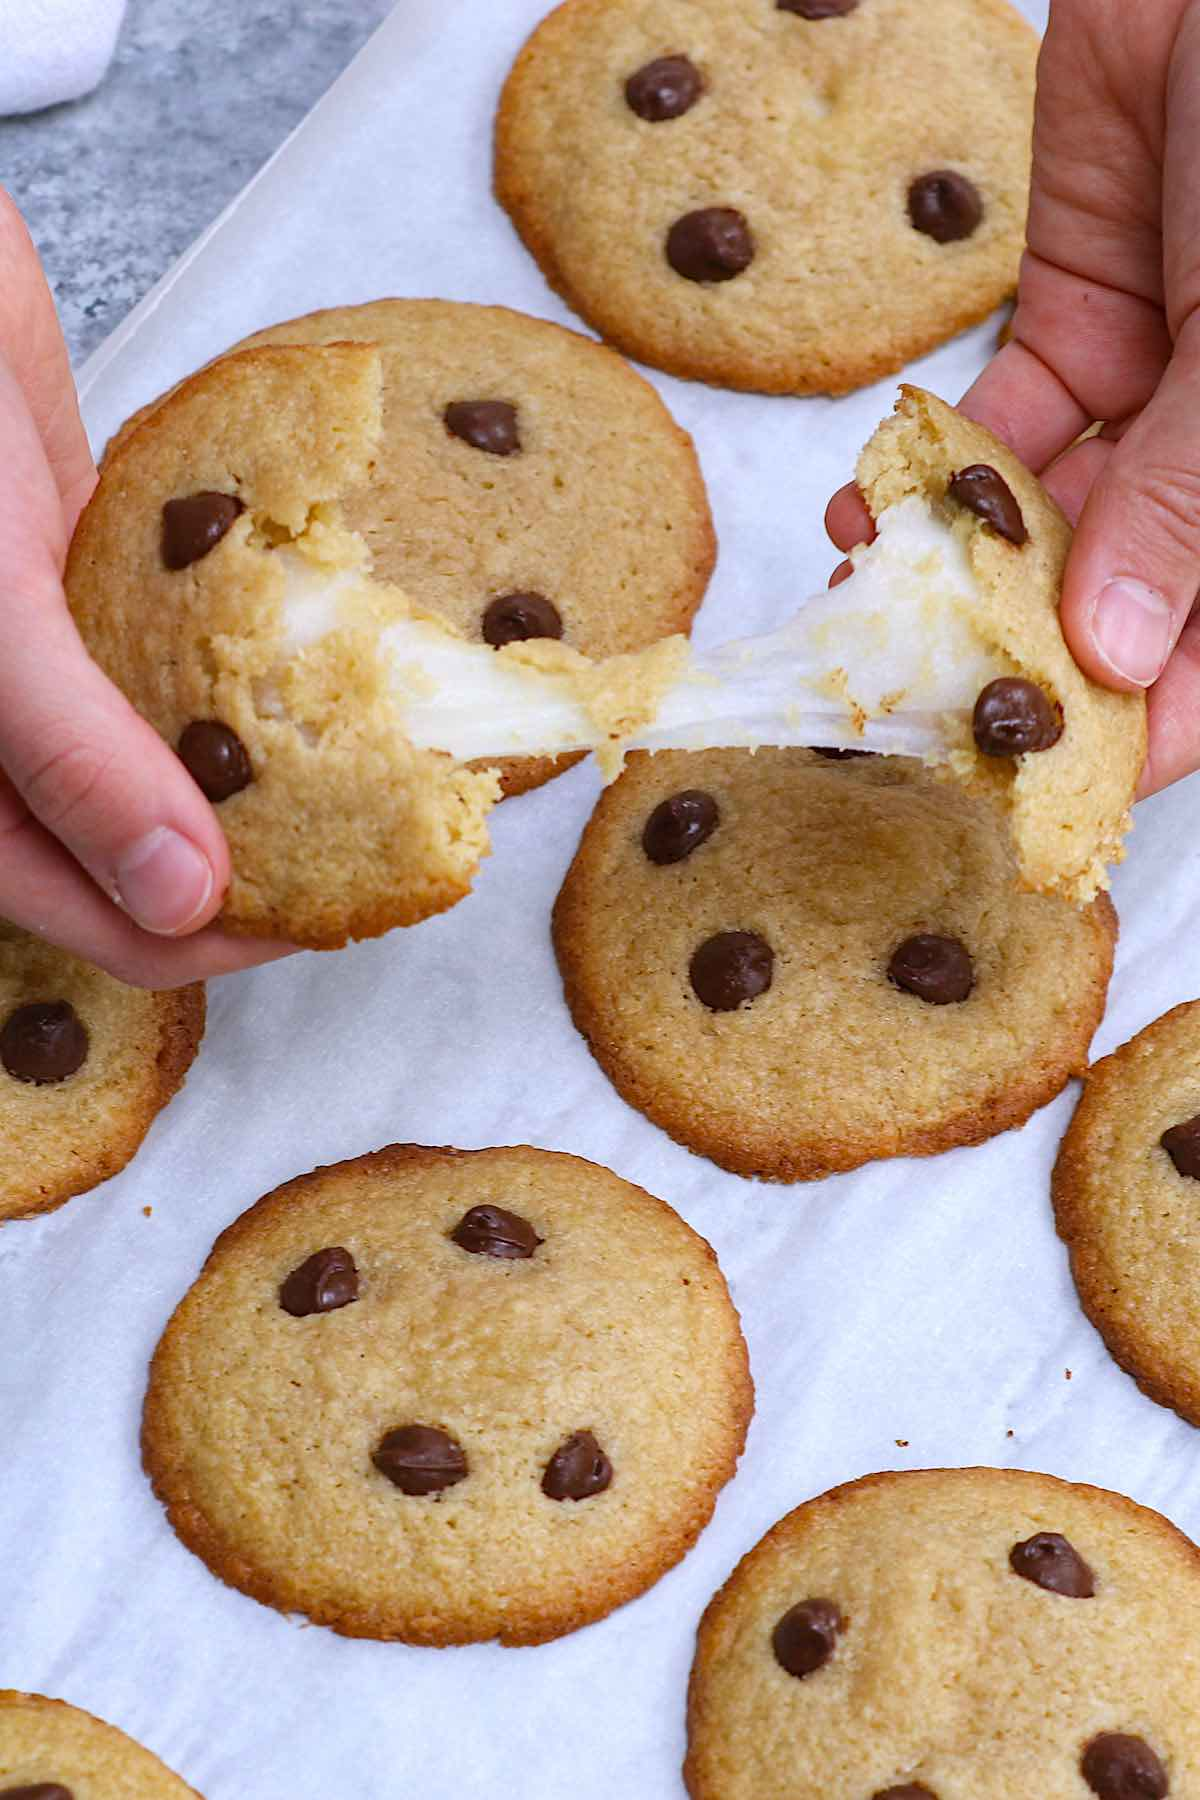 Mochi Cookies, who could resist them? Sweet and sticky mochi dough on the inside; soft and chewy cookies on the outside, packed with chocolate flavor! This mochi stuffed chocolate chip cookies recipe is quite easy to make, and you can customize the cookie dough with different flavors like Matcha green tea or peanut butter. #MochiCookies